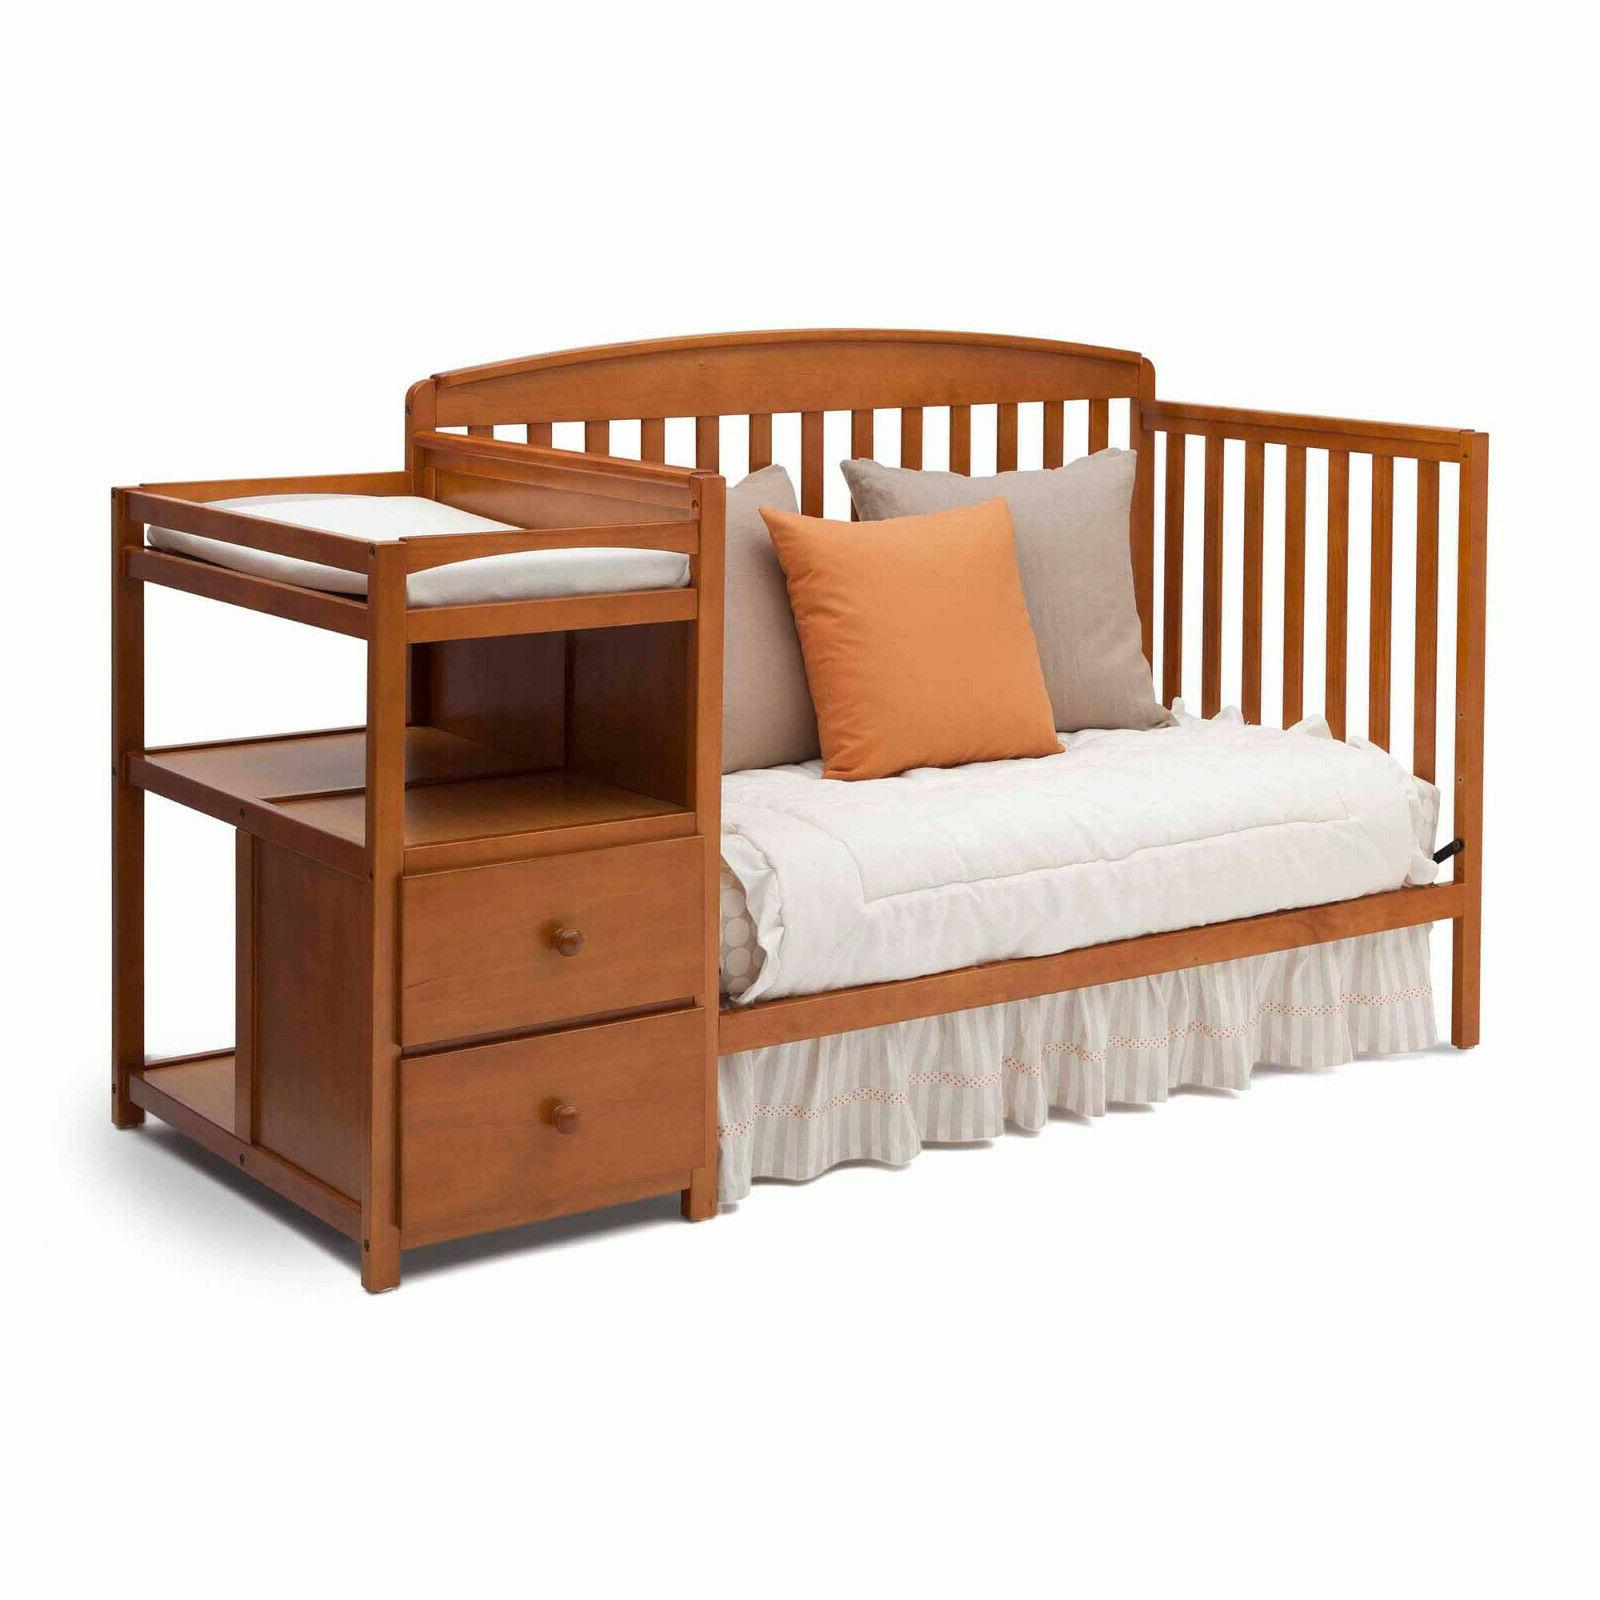 Convertible and Changing Room Daybed 2